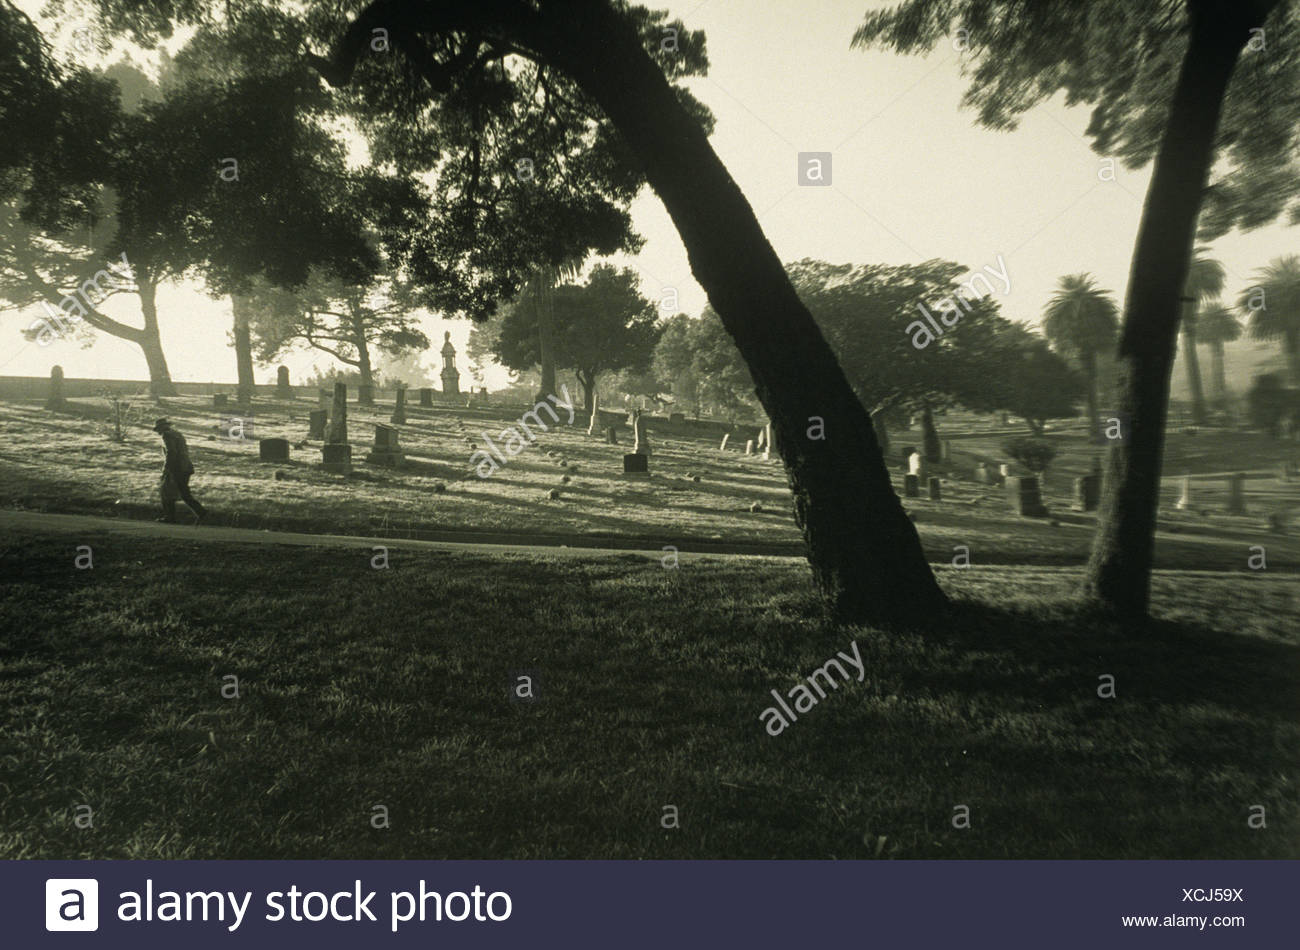 Elderly male figure walking in cemetery under trees - Stock Image